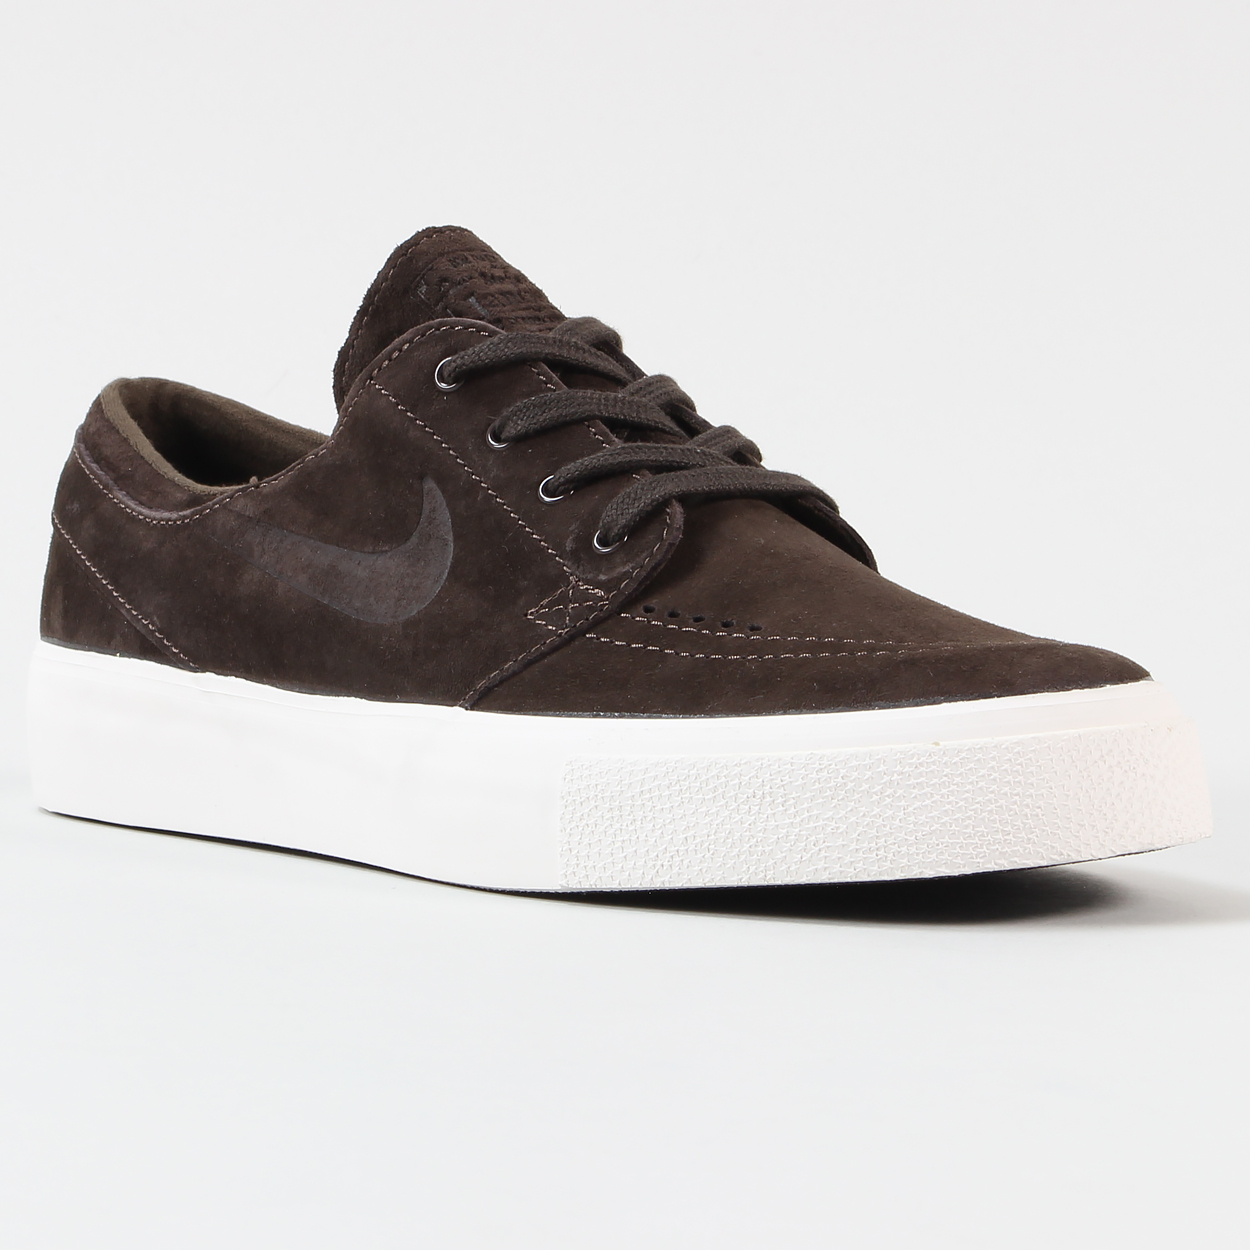 release date: dcc6b d2667 The Stefan Janoski Premium model from Nike SB features double sided Swoosh  and a herringbone tread for grip along with a logo tab to the tongue.